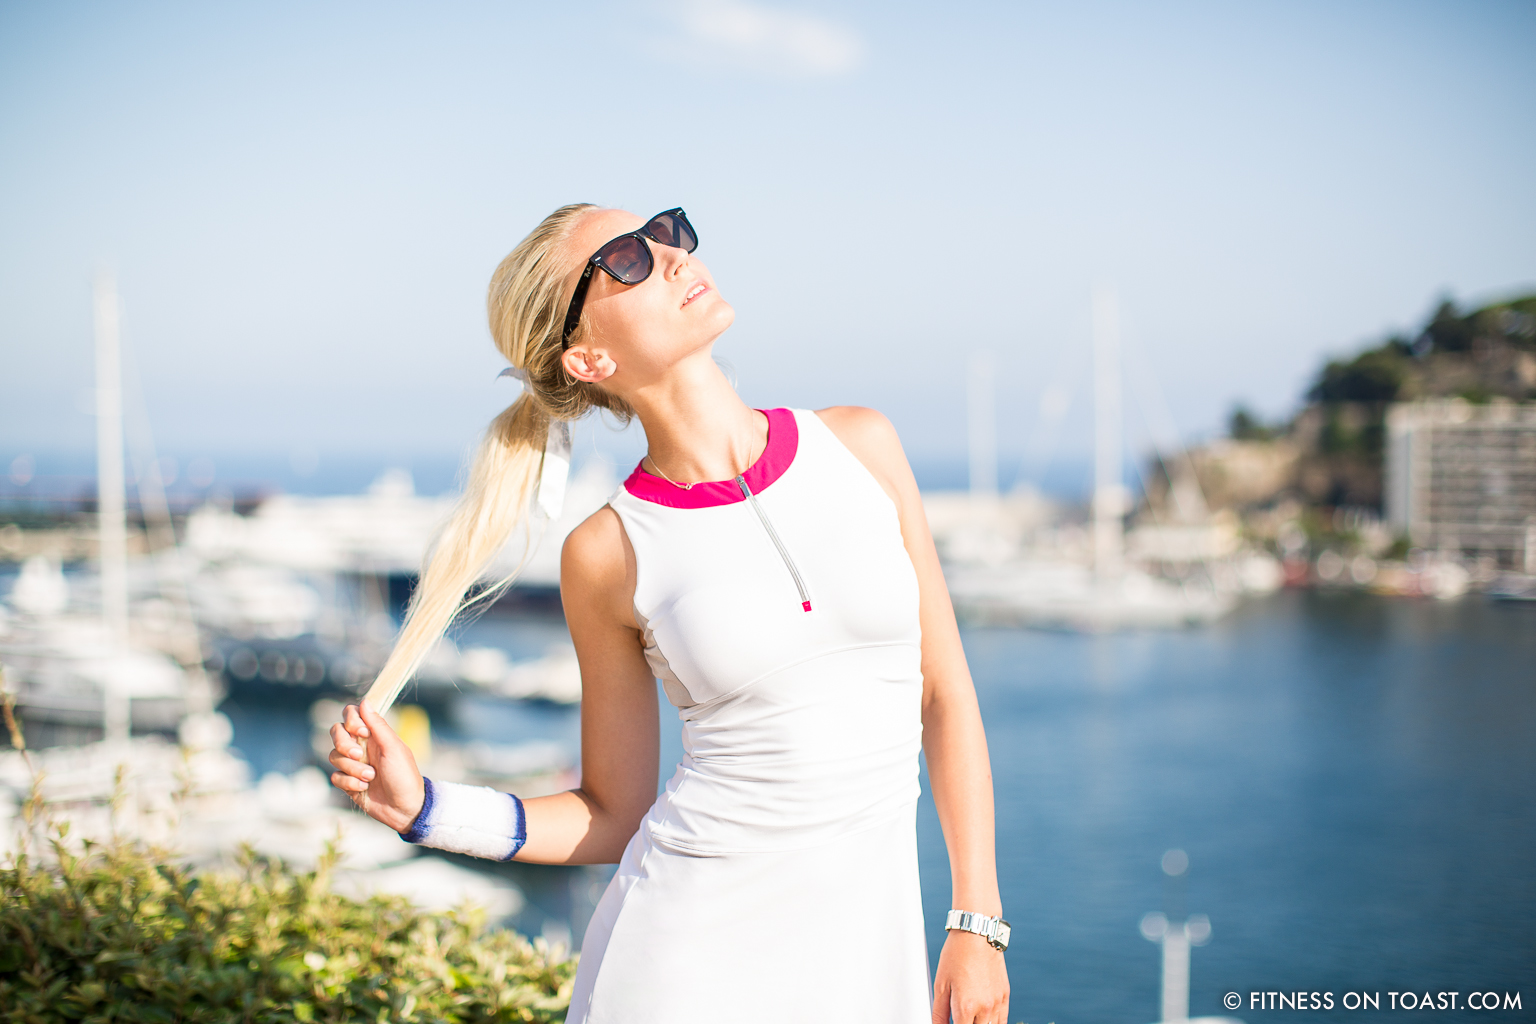 tennis clothes, women, clothing & apparel, apparel clothing, apparel, tennis, women, woman, tennis clothes for women, outfit, running, skirt, dress, gym, train, clothing, Monreal, vogue, fashion, fashionable, elegant, faya, fitness on toast, fot.com